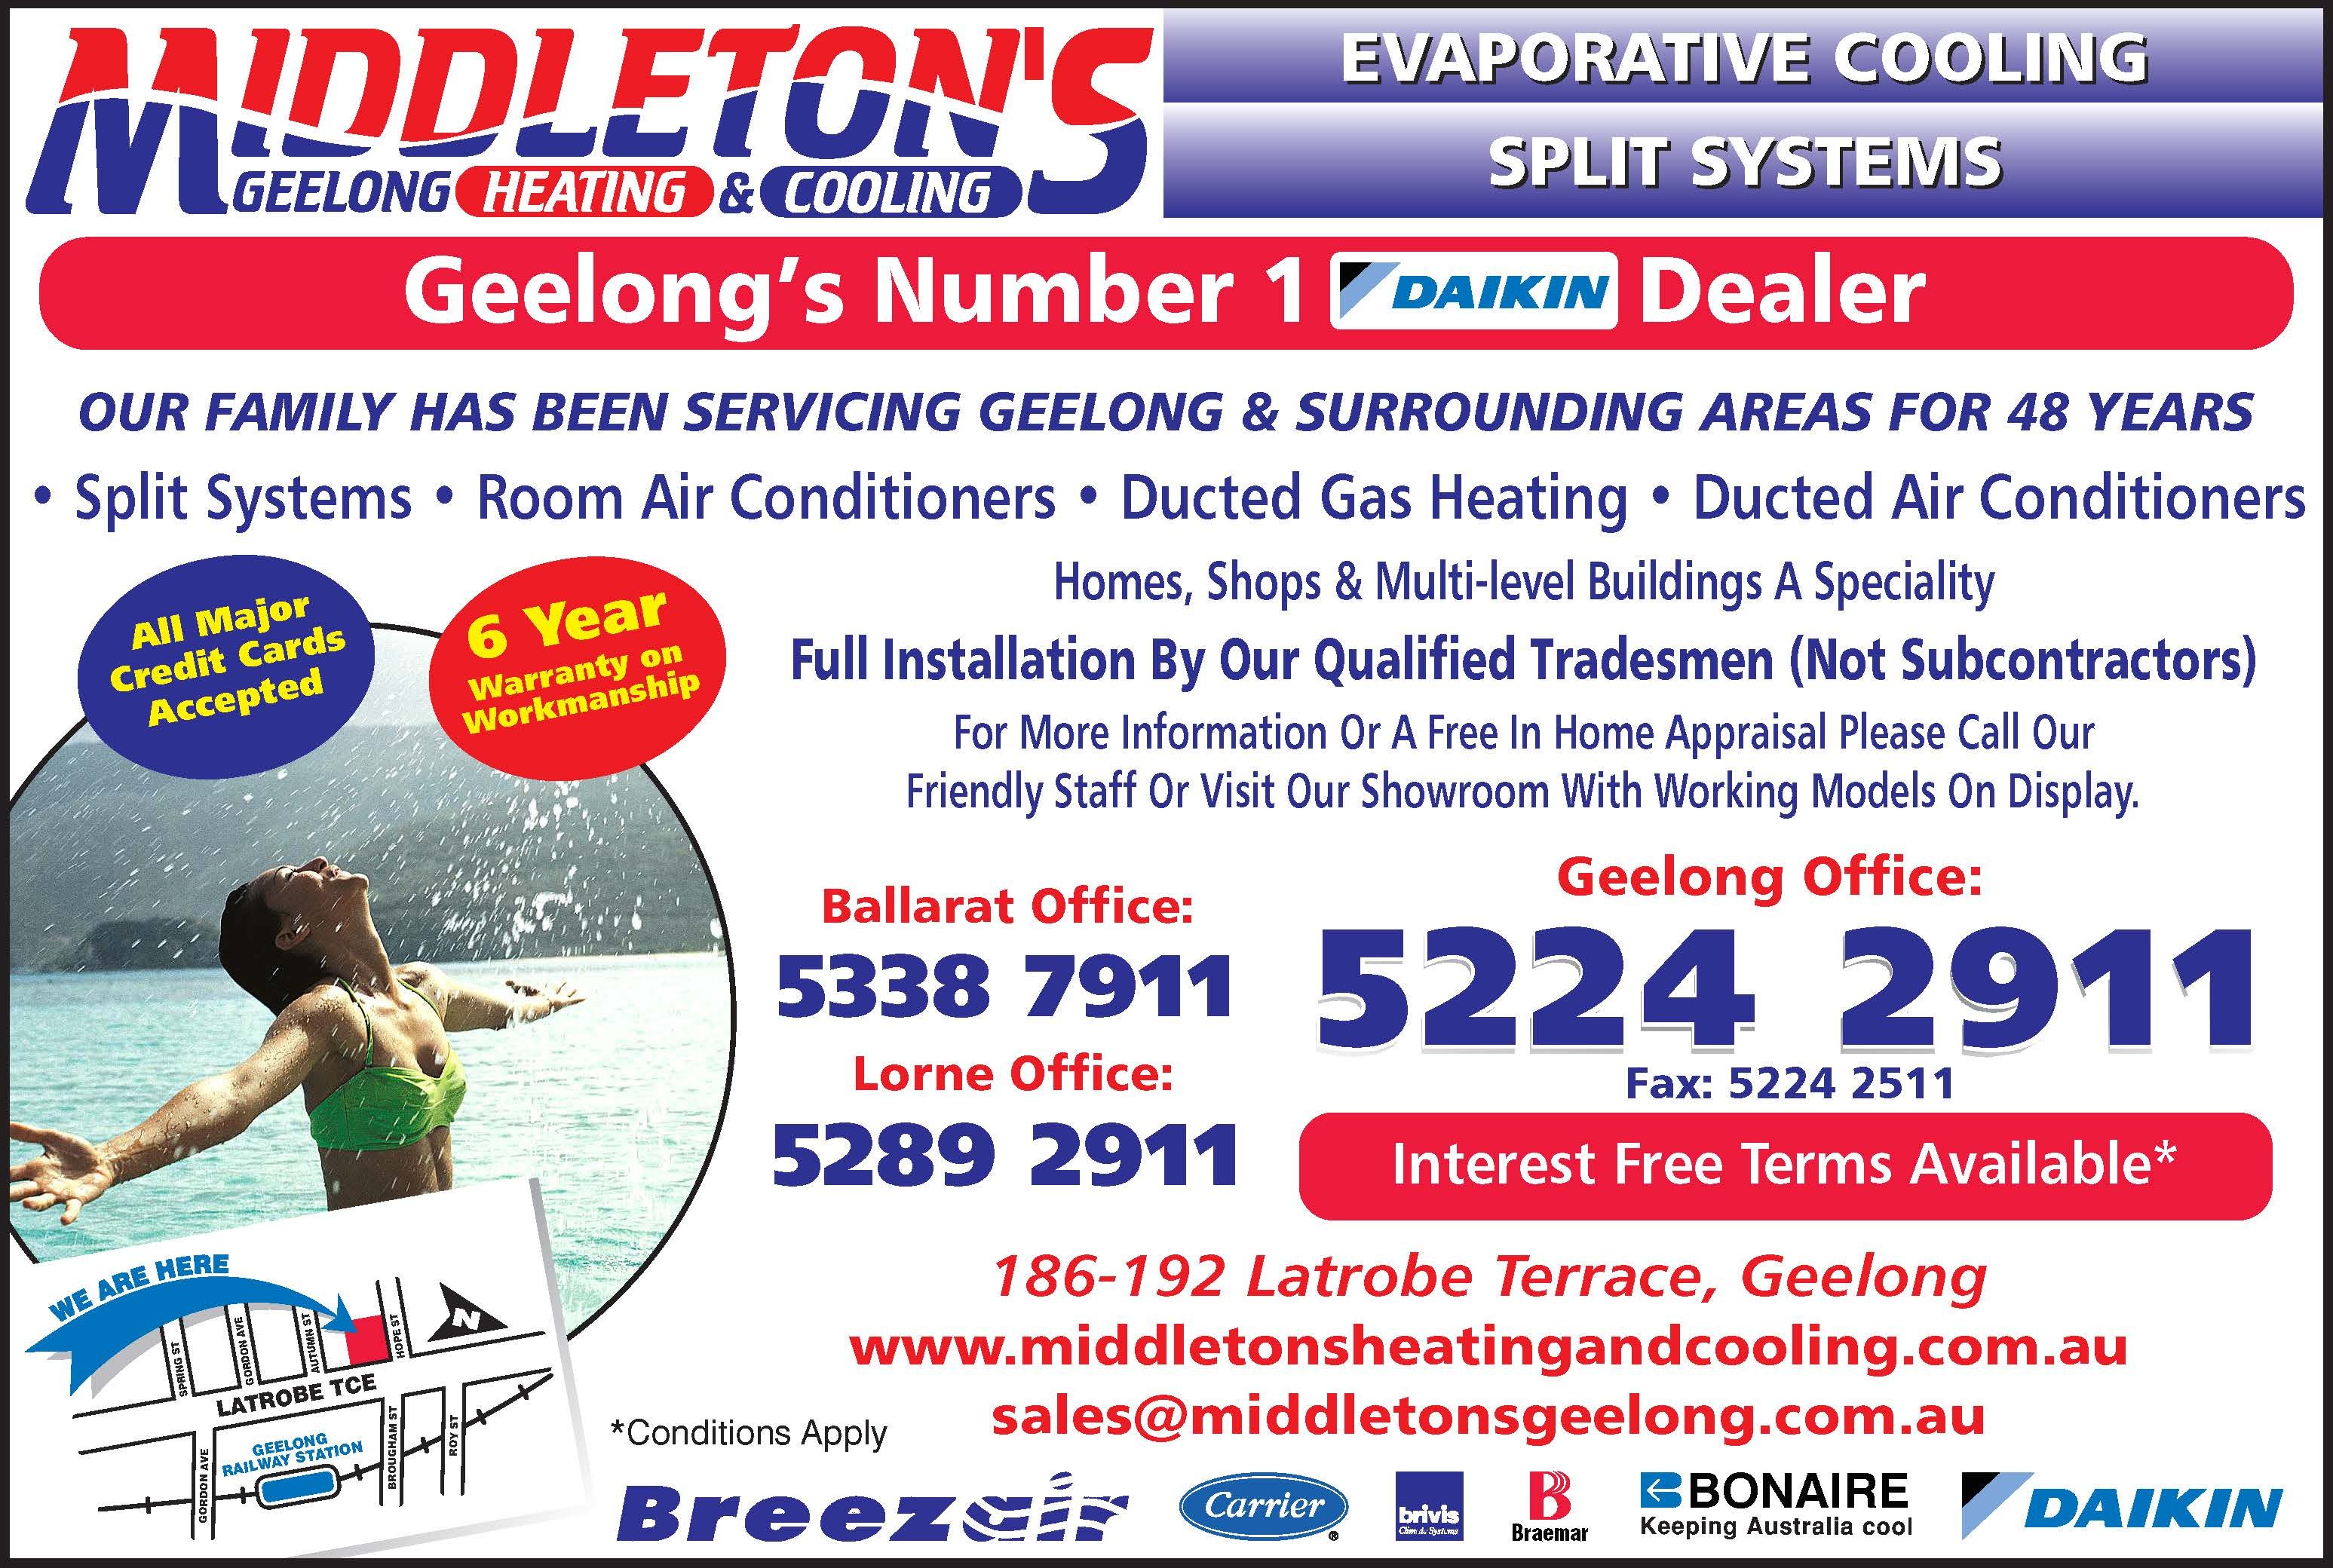 Middletons geelong heating cooling home air conditioning air conditioning ad reheart Image collections